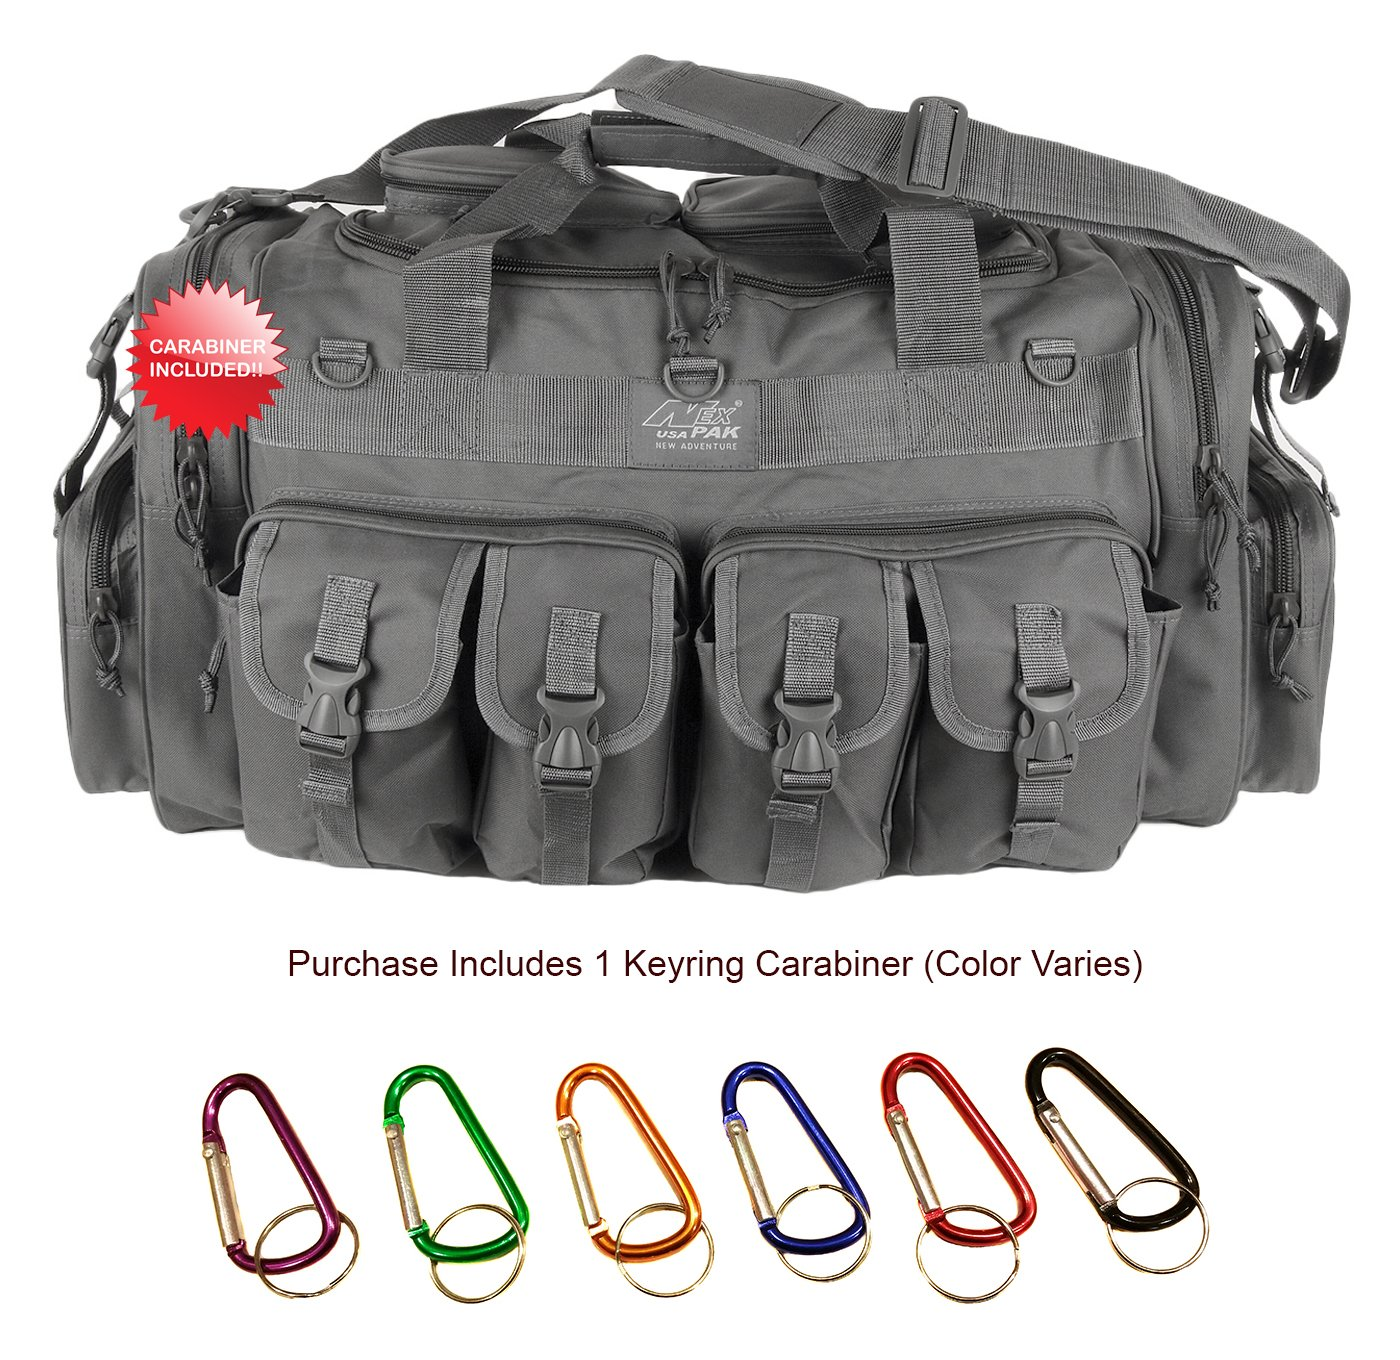 1e634700d9 Amazon.com   NPUSA Mens Gray Grey 30 Inch Convertible Backpack Duffel Molle  Tactical Shoulder Bag with Key Ring Carabiner   Sports   Outdoors